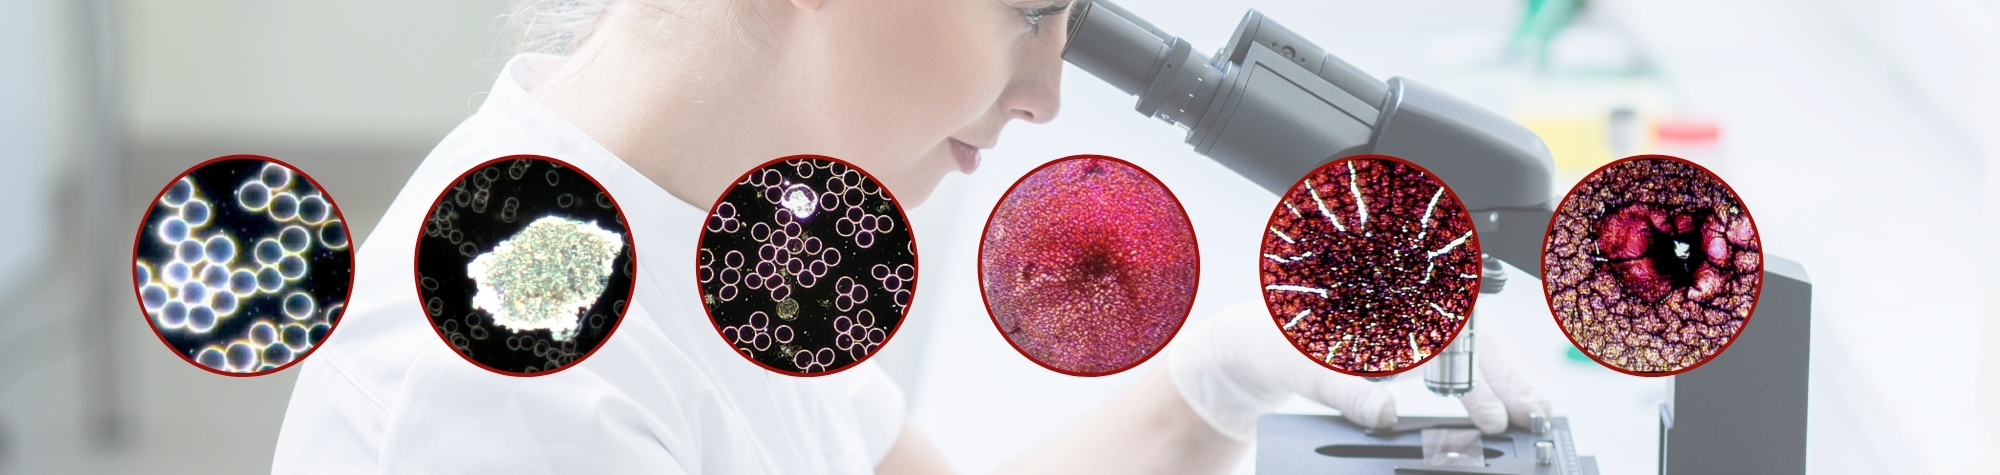 Live Cell Microscopy Course | Online Nutrition Training Course & Diplomas | Edison Institute of Nutrition